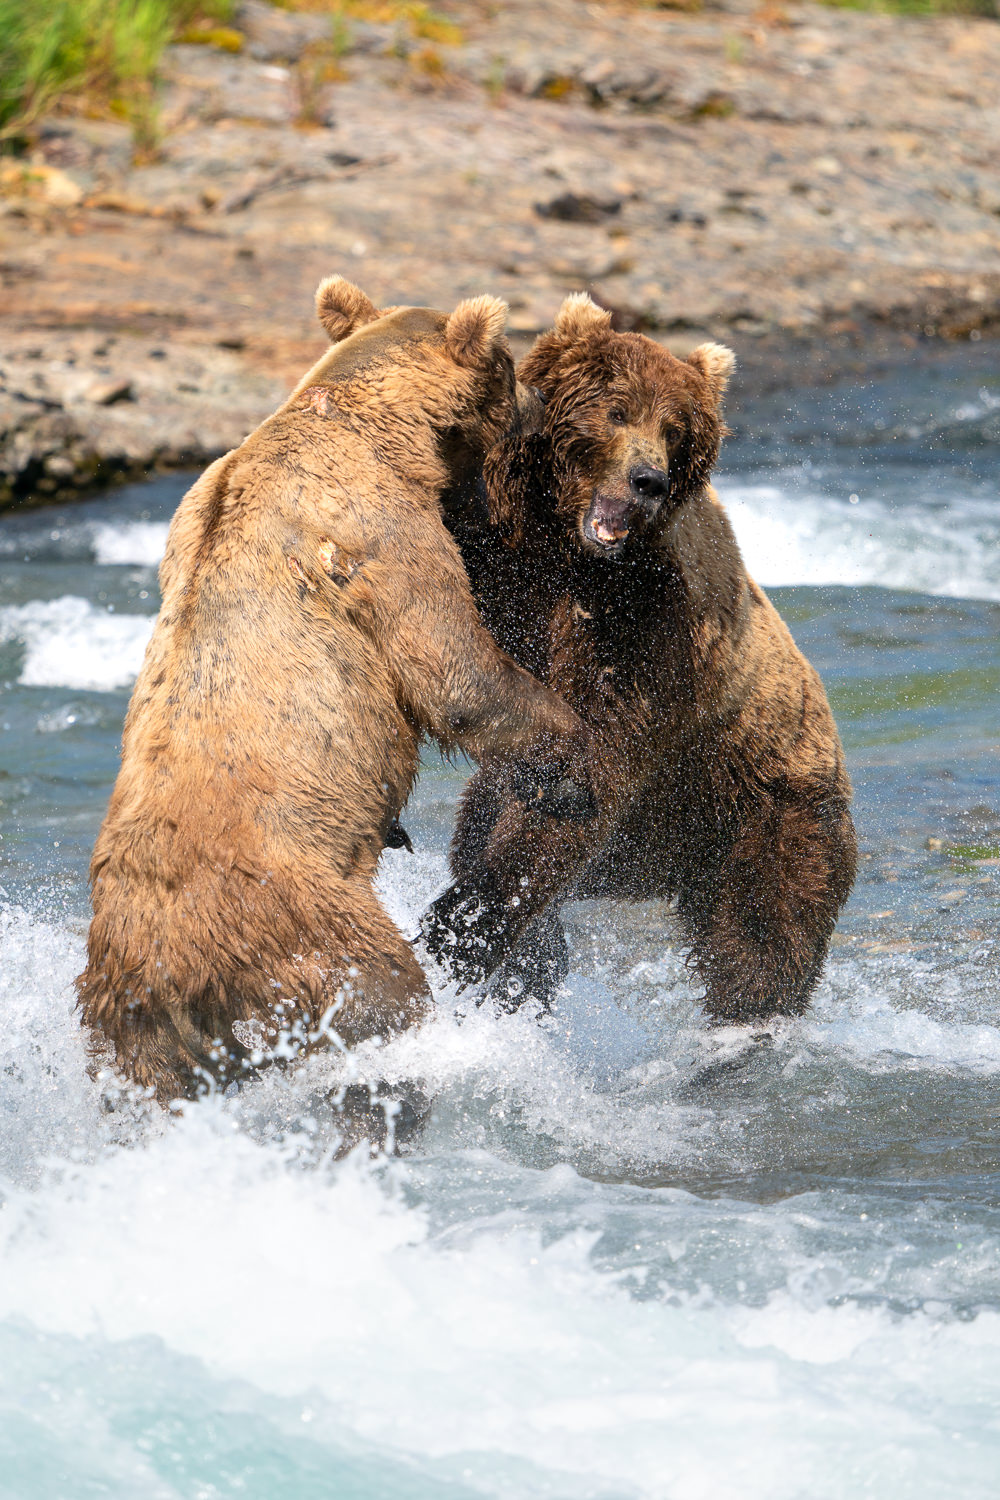 Bears Fighting at McNeil River in Alaska Taken with Sony a9 w/ 200-600 f/5.6-6.3 FE lens